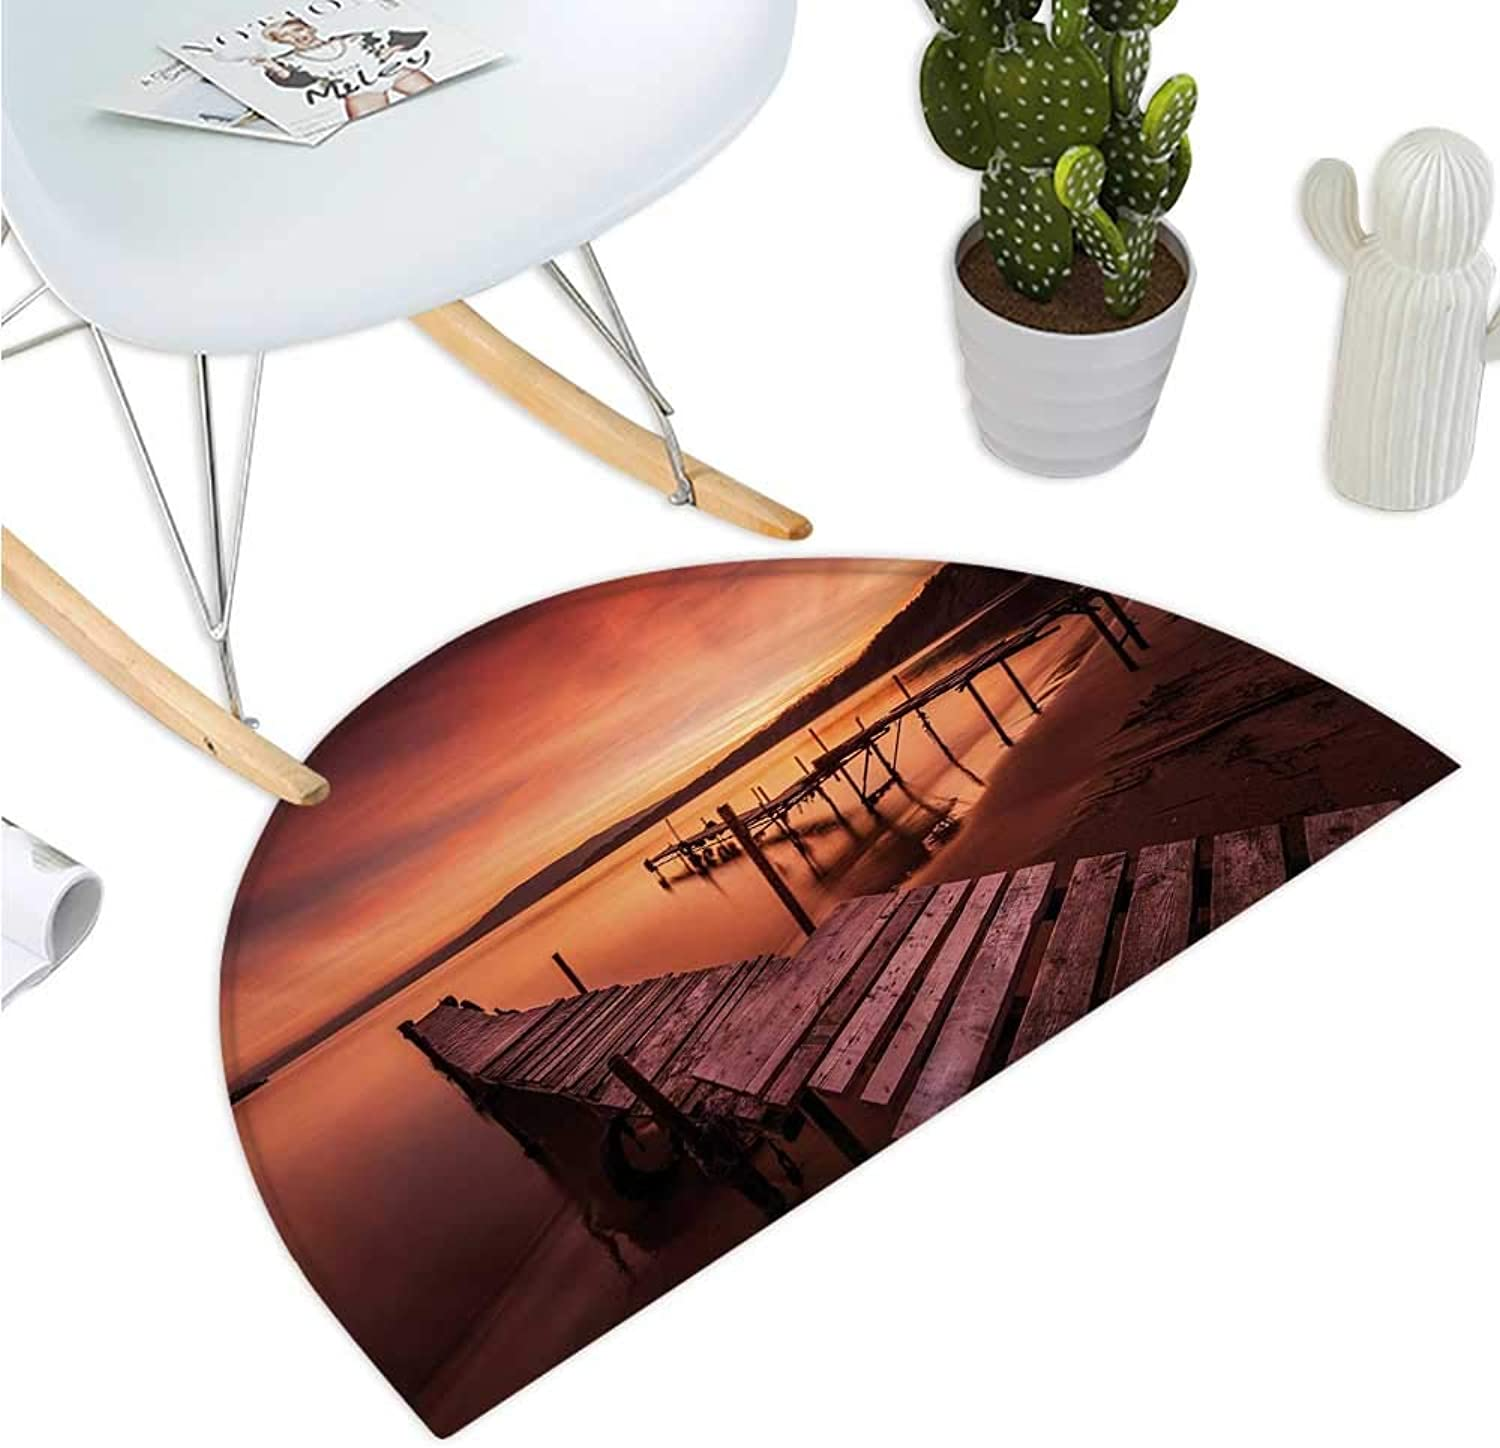 orange Semicircular Cushion Old Rustic Pier on The Beach and Romantic Tranquil Sky Pure Twilight Concept Scenic Bathroom Mat H 35.4  xD 53.1  orange